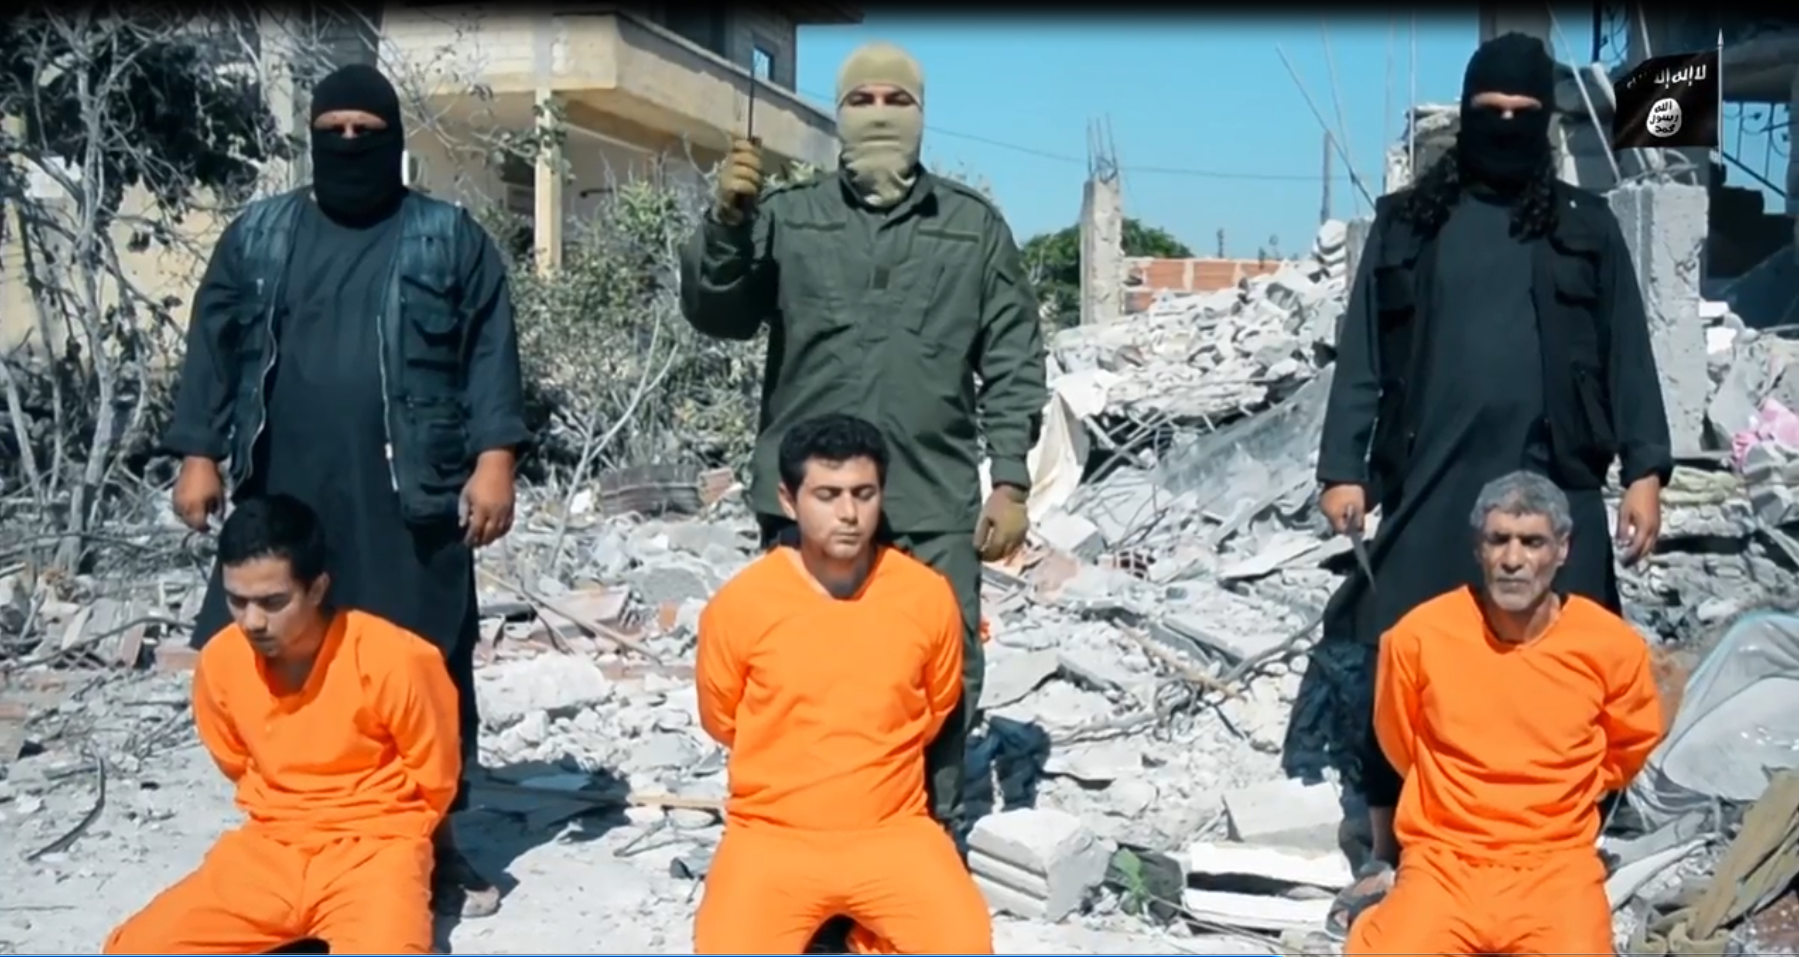 ISIS released a video Feb. 26, 2018 about the Yarmouk refugee camp in Syria in which they beheaded hostages